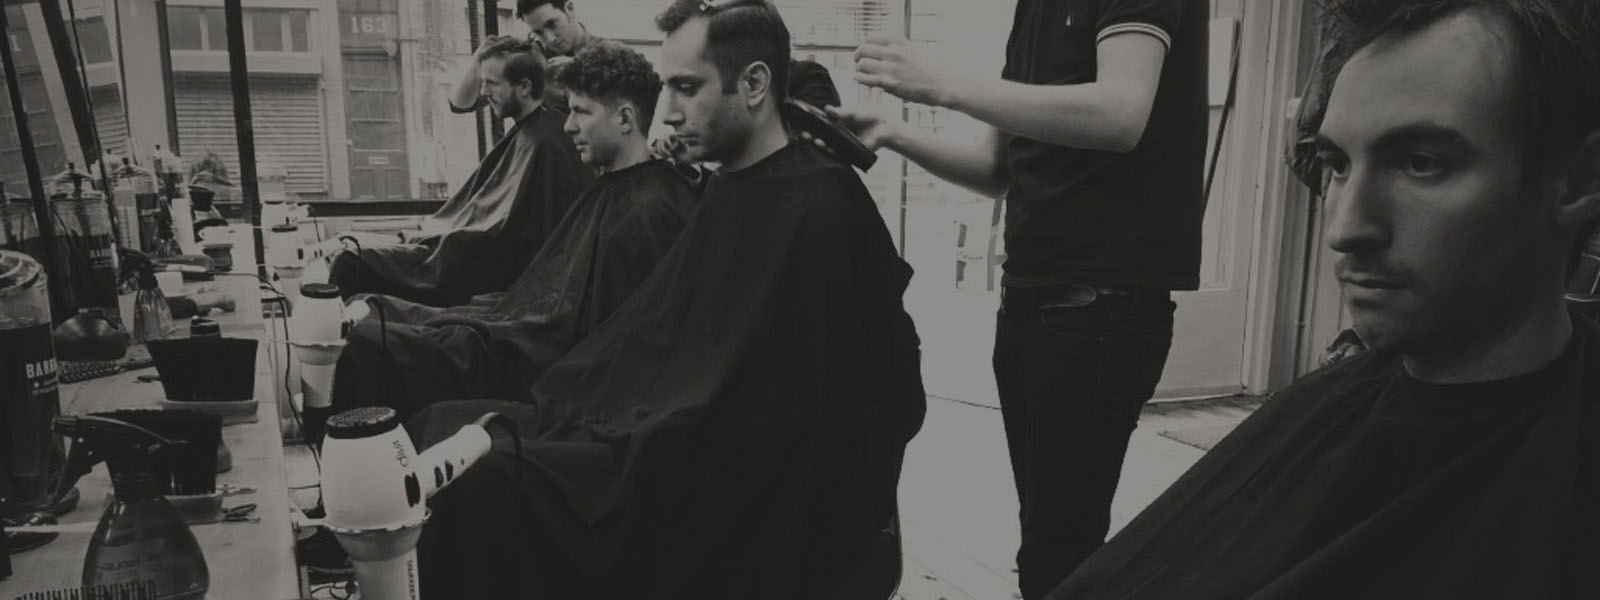 Rock men's salon west hampstead